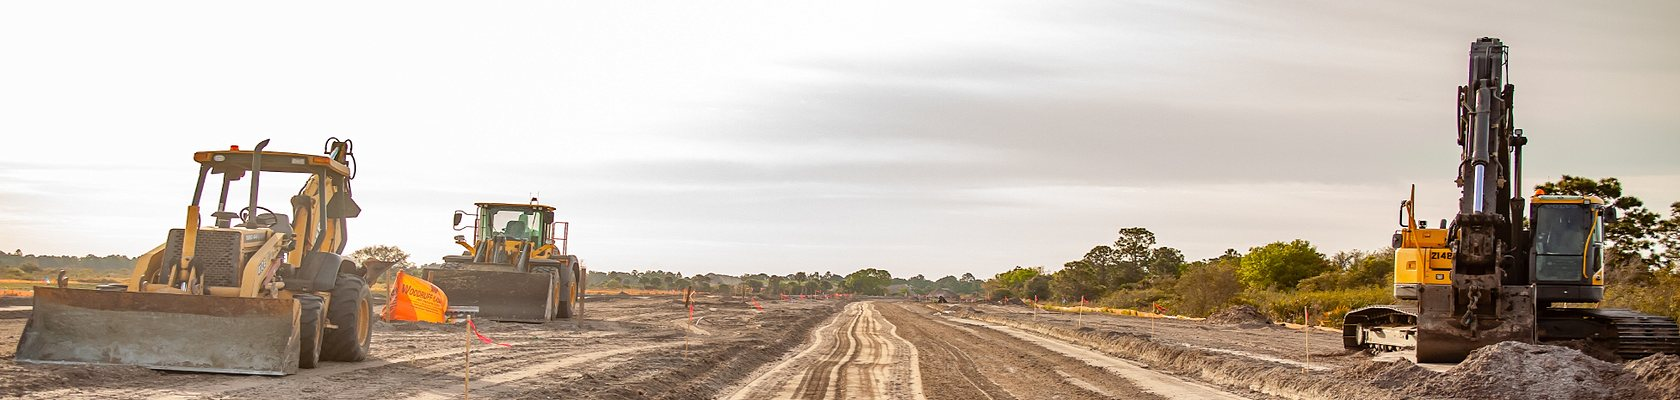 tractors on construction site